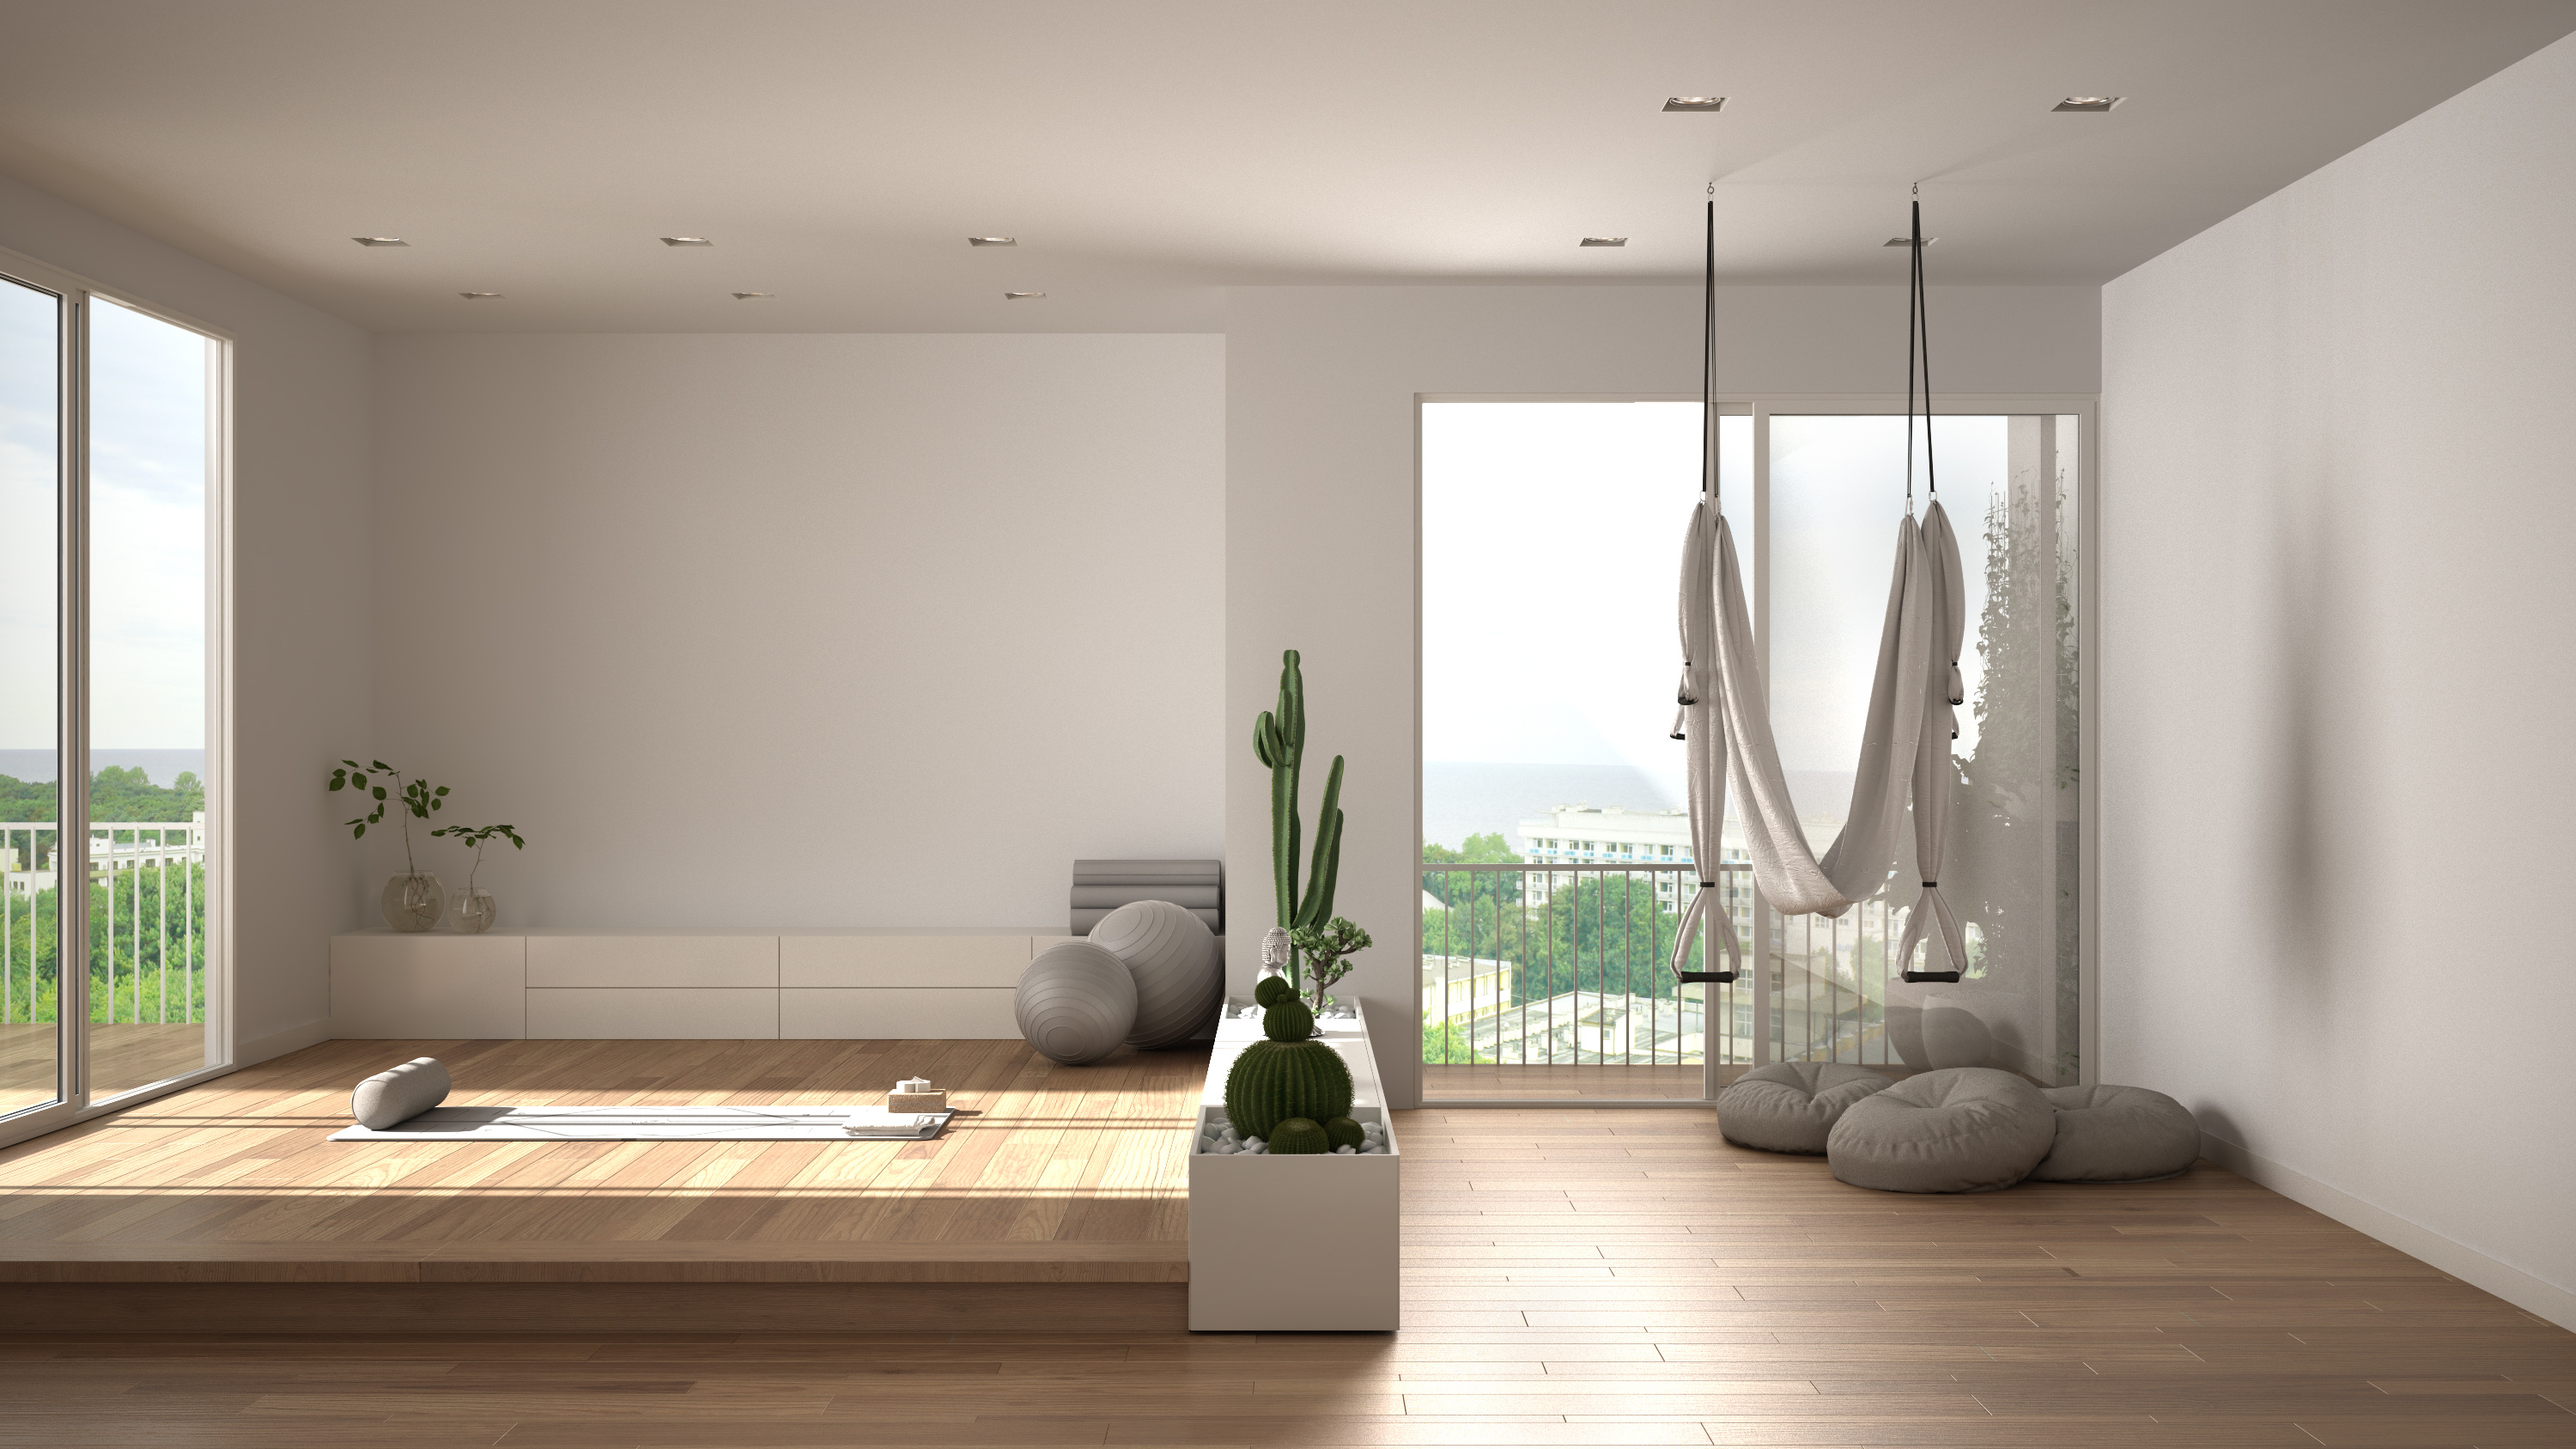 Home yoga studio design visualisation